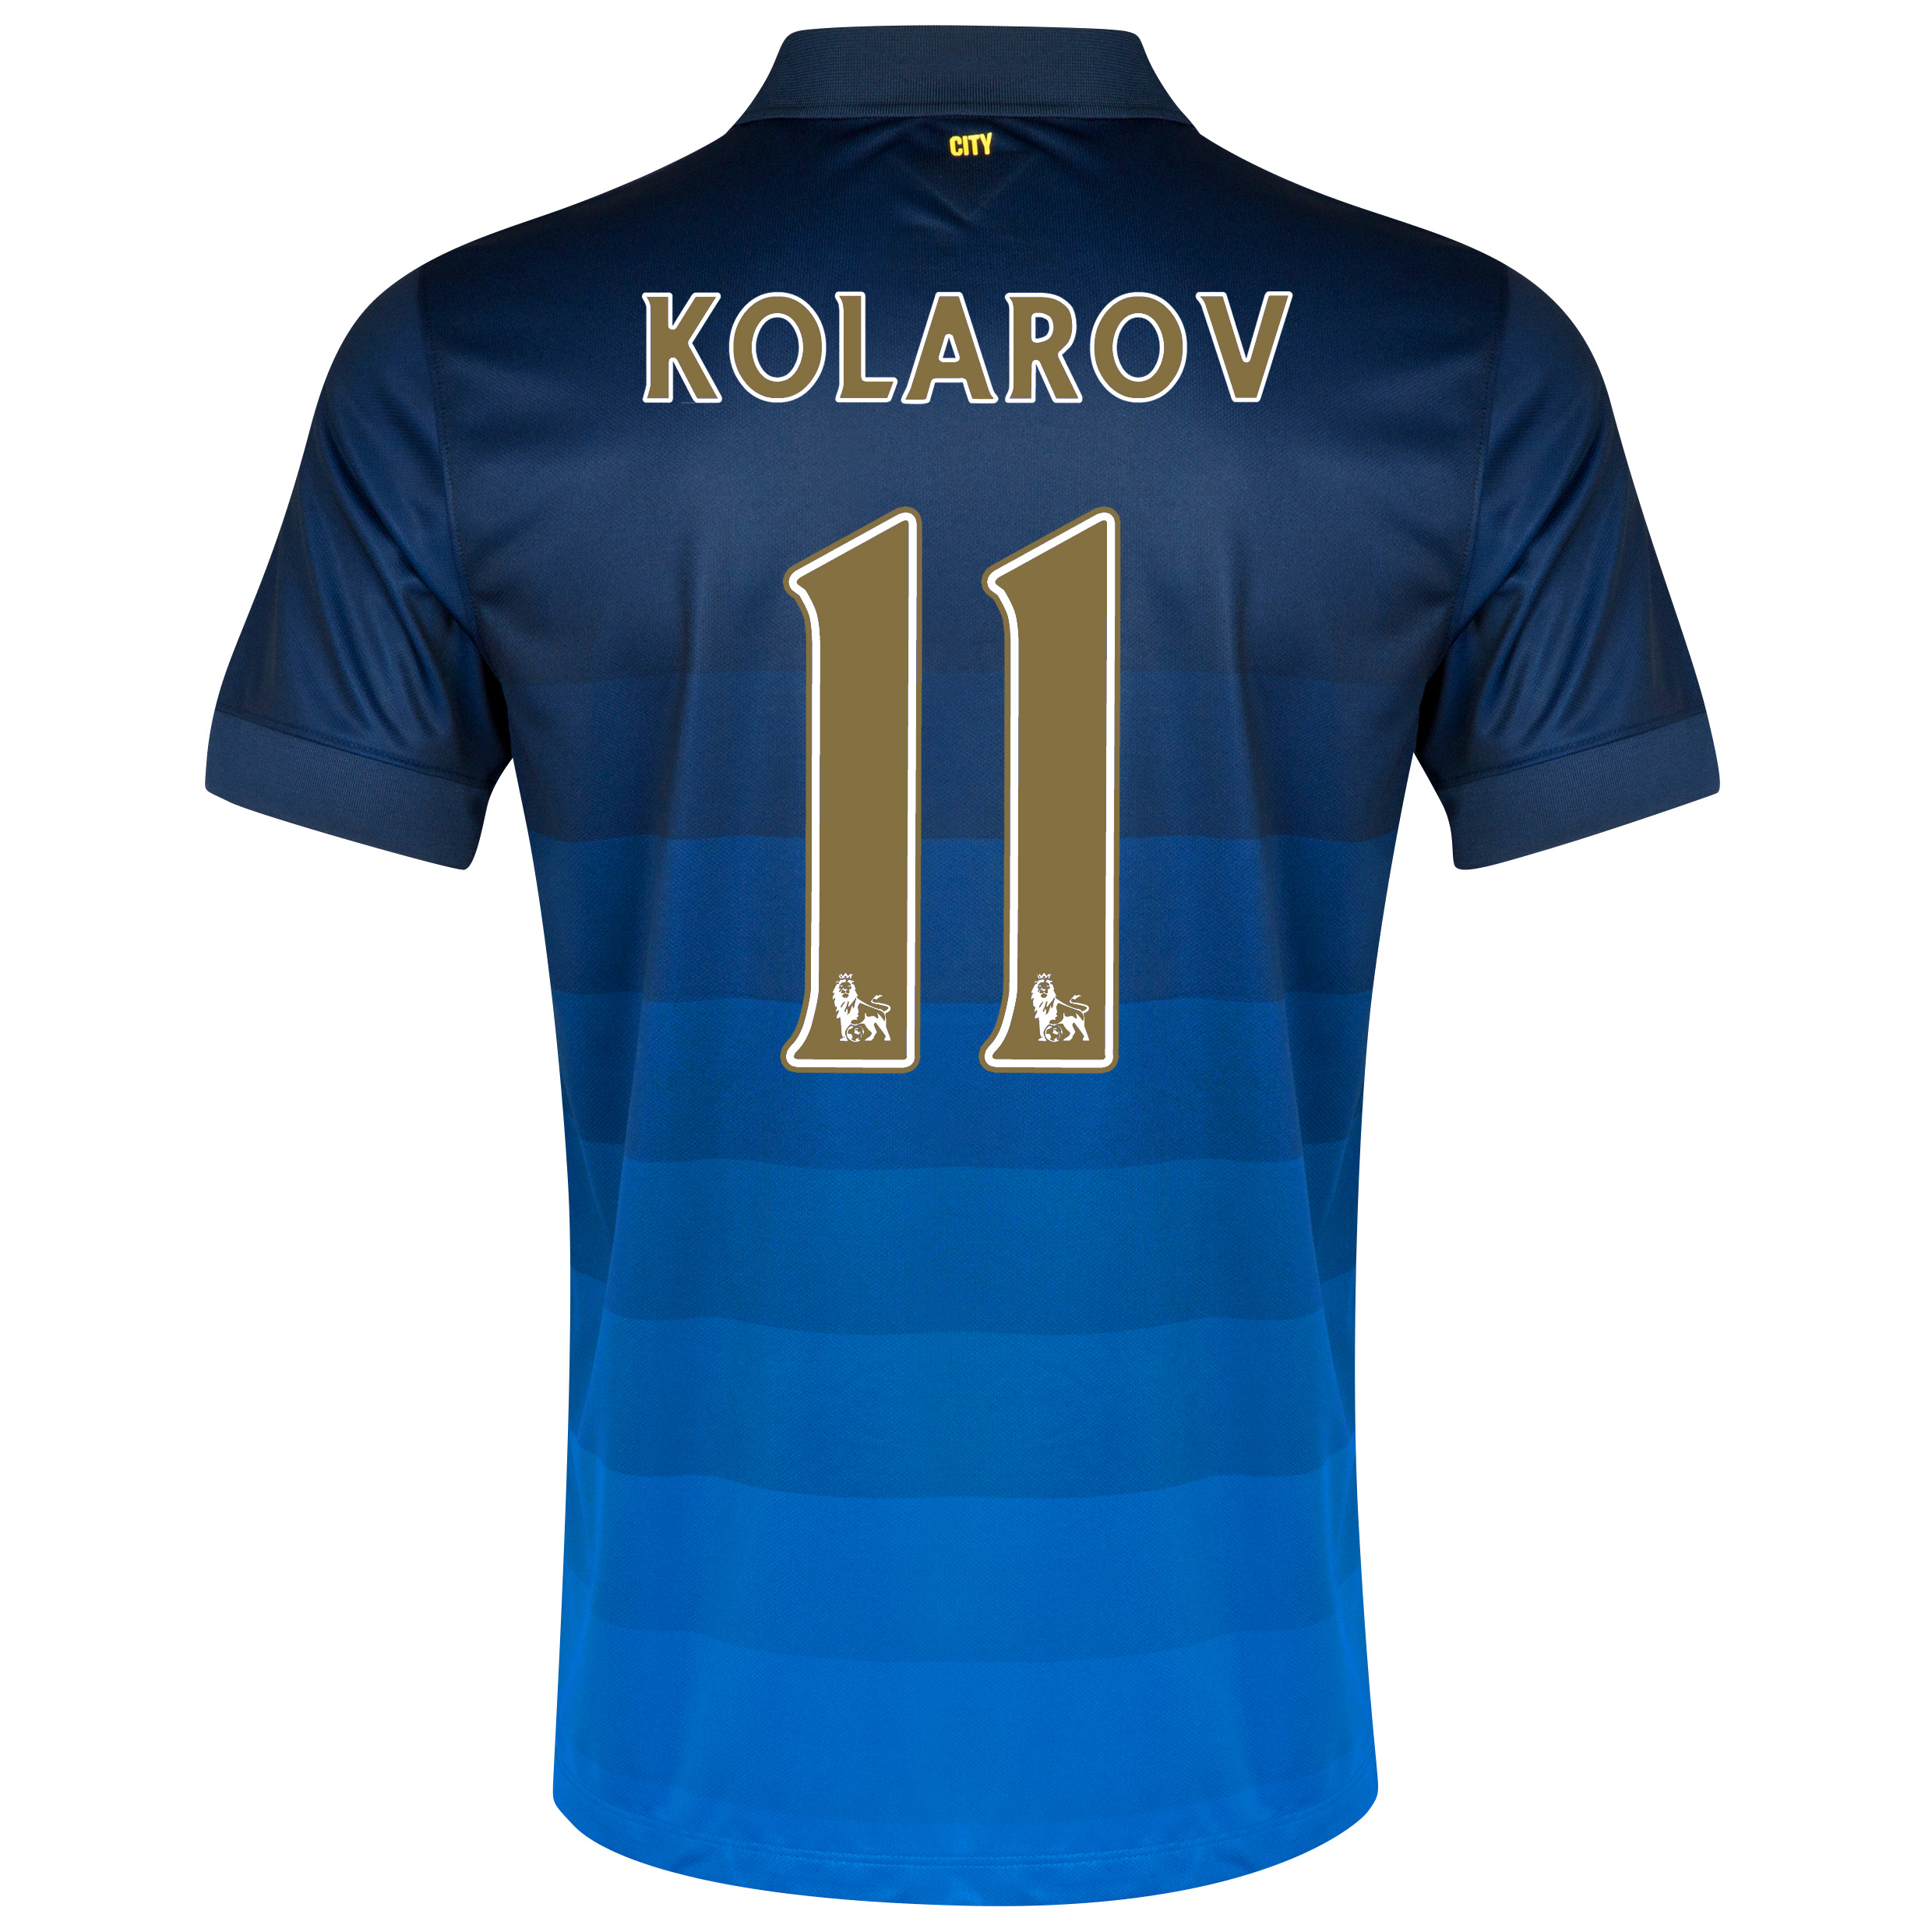 Manchester City Away Shirt 2014/15 - Kids with Kolarov 11 printing